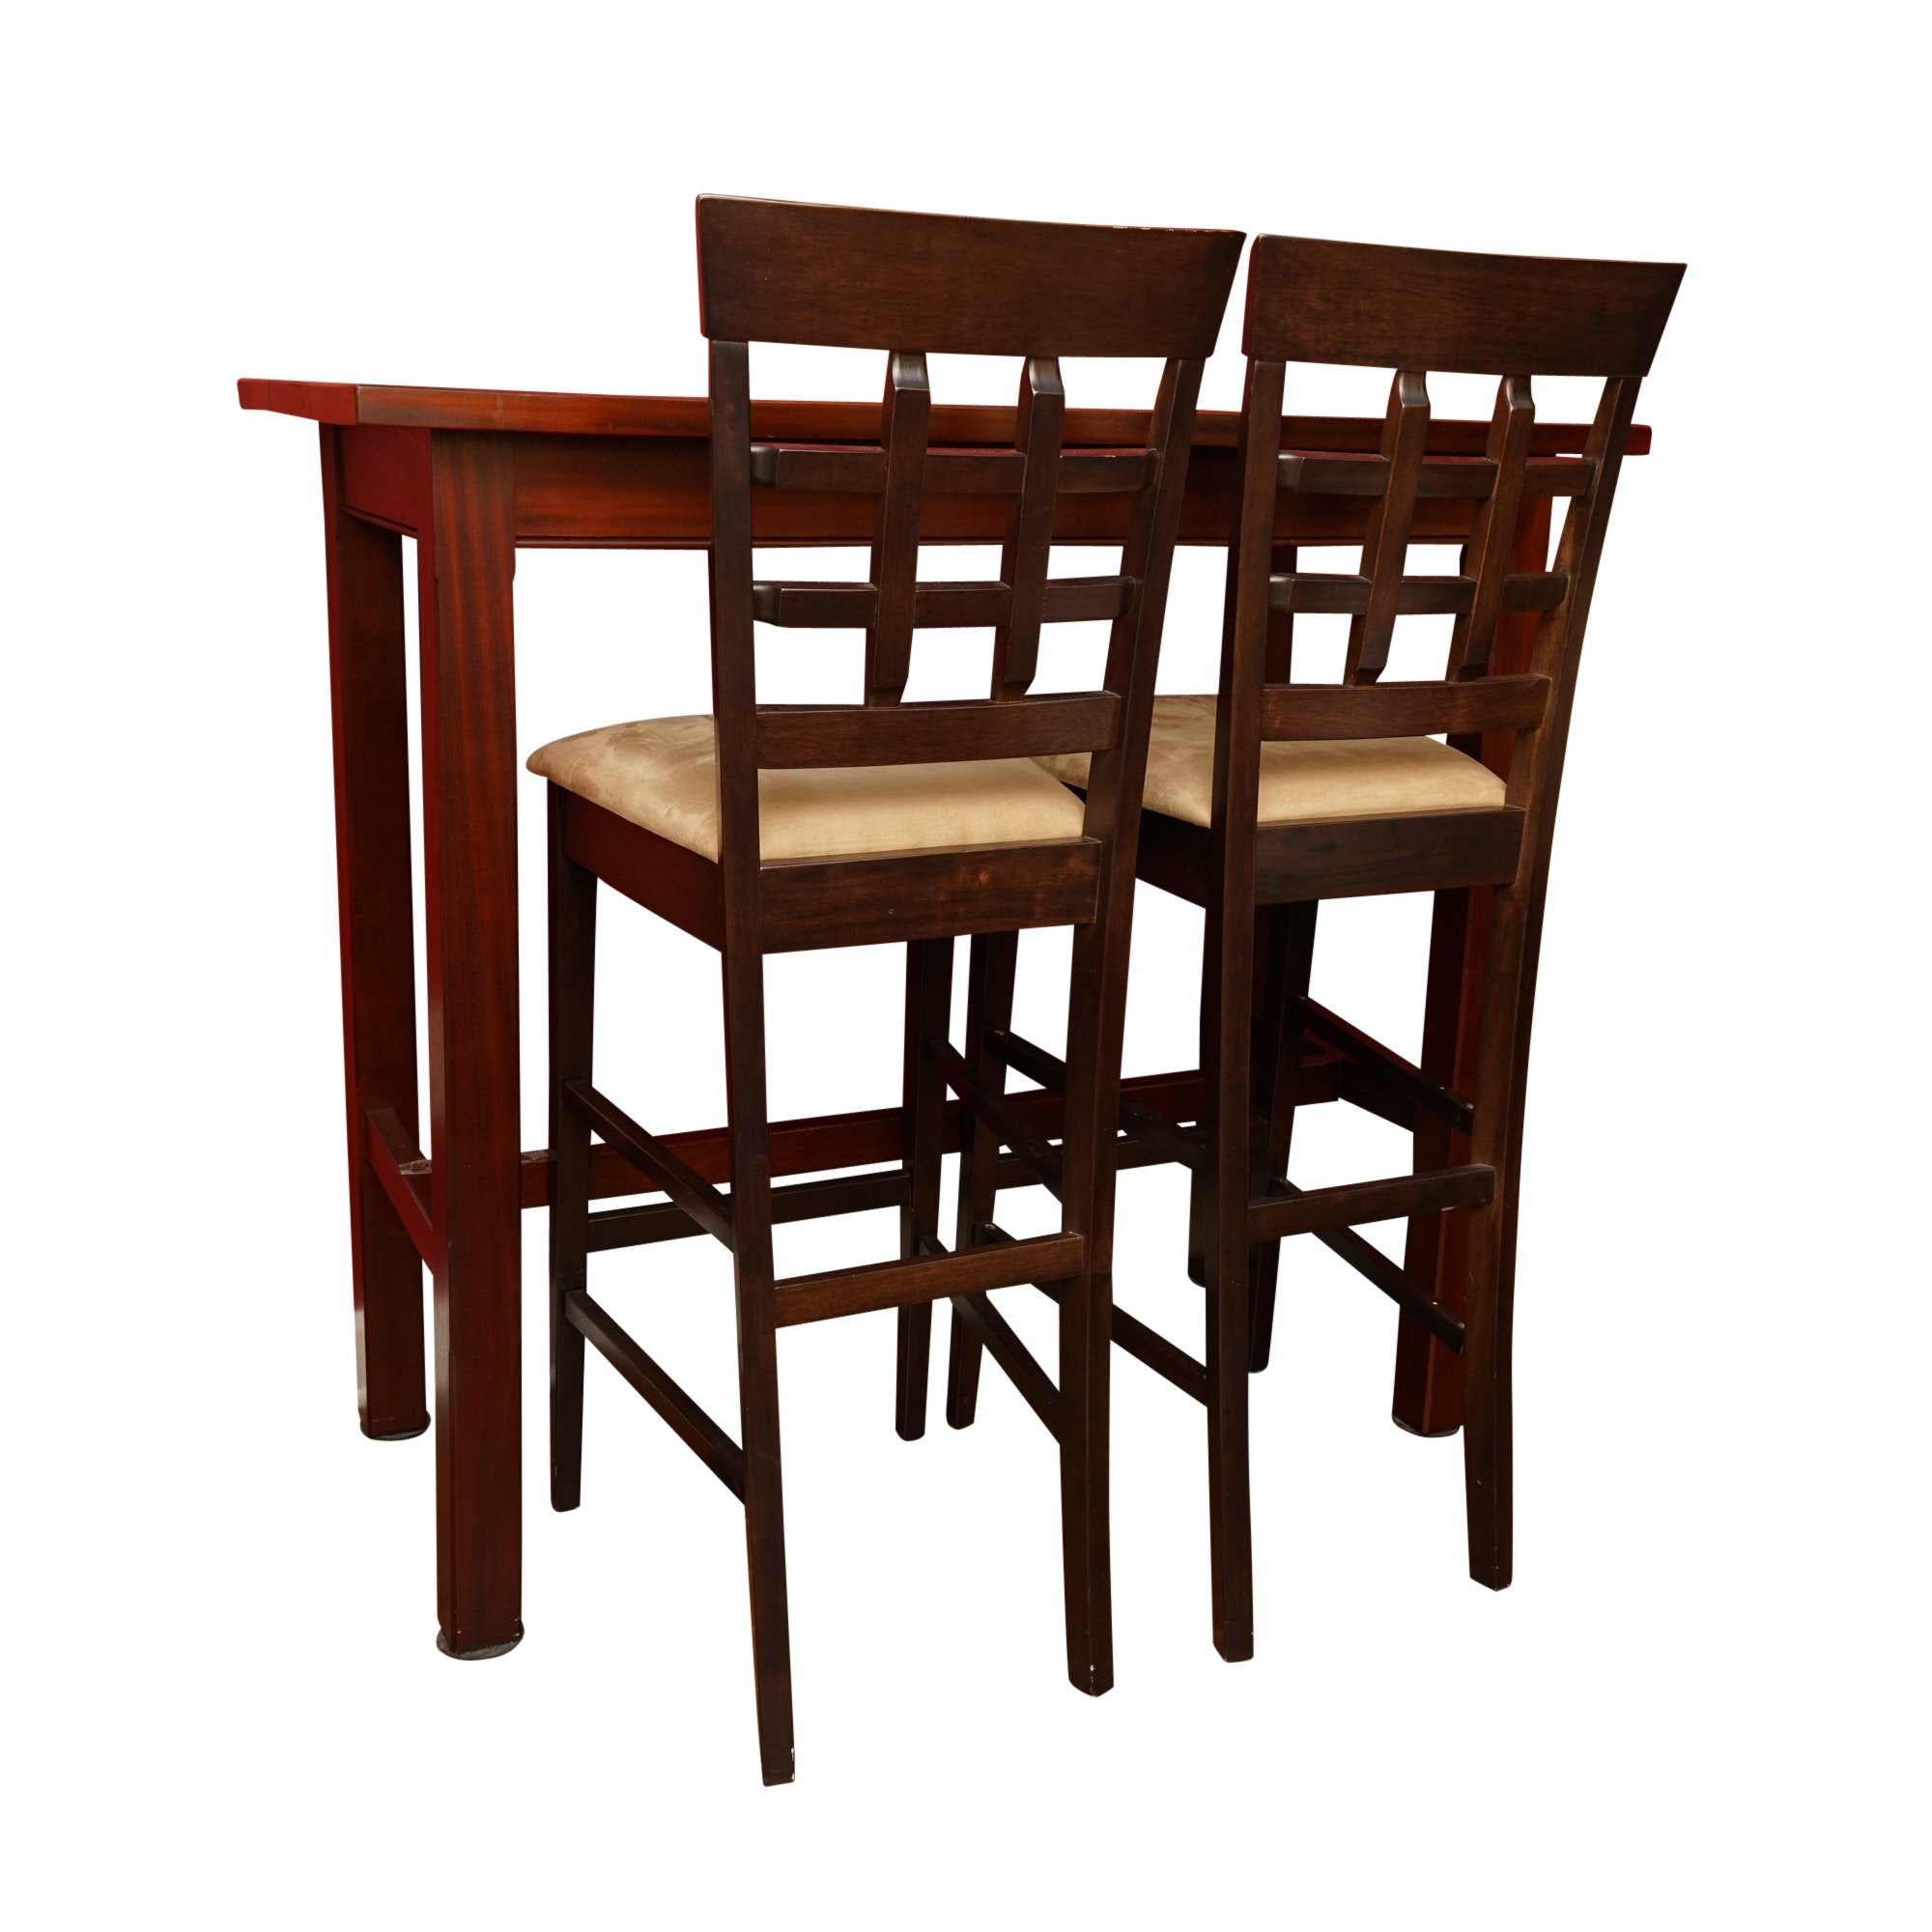 High-Top Dining Table with Chairs